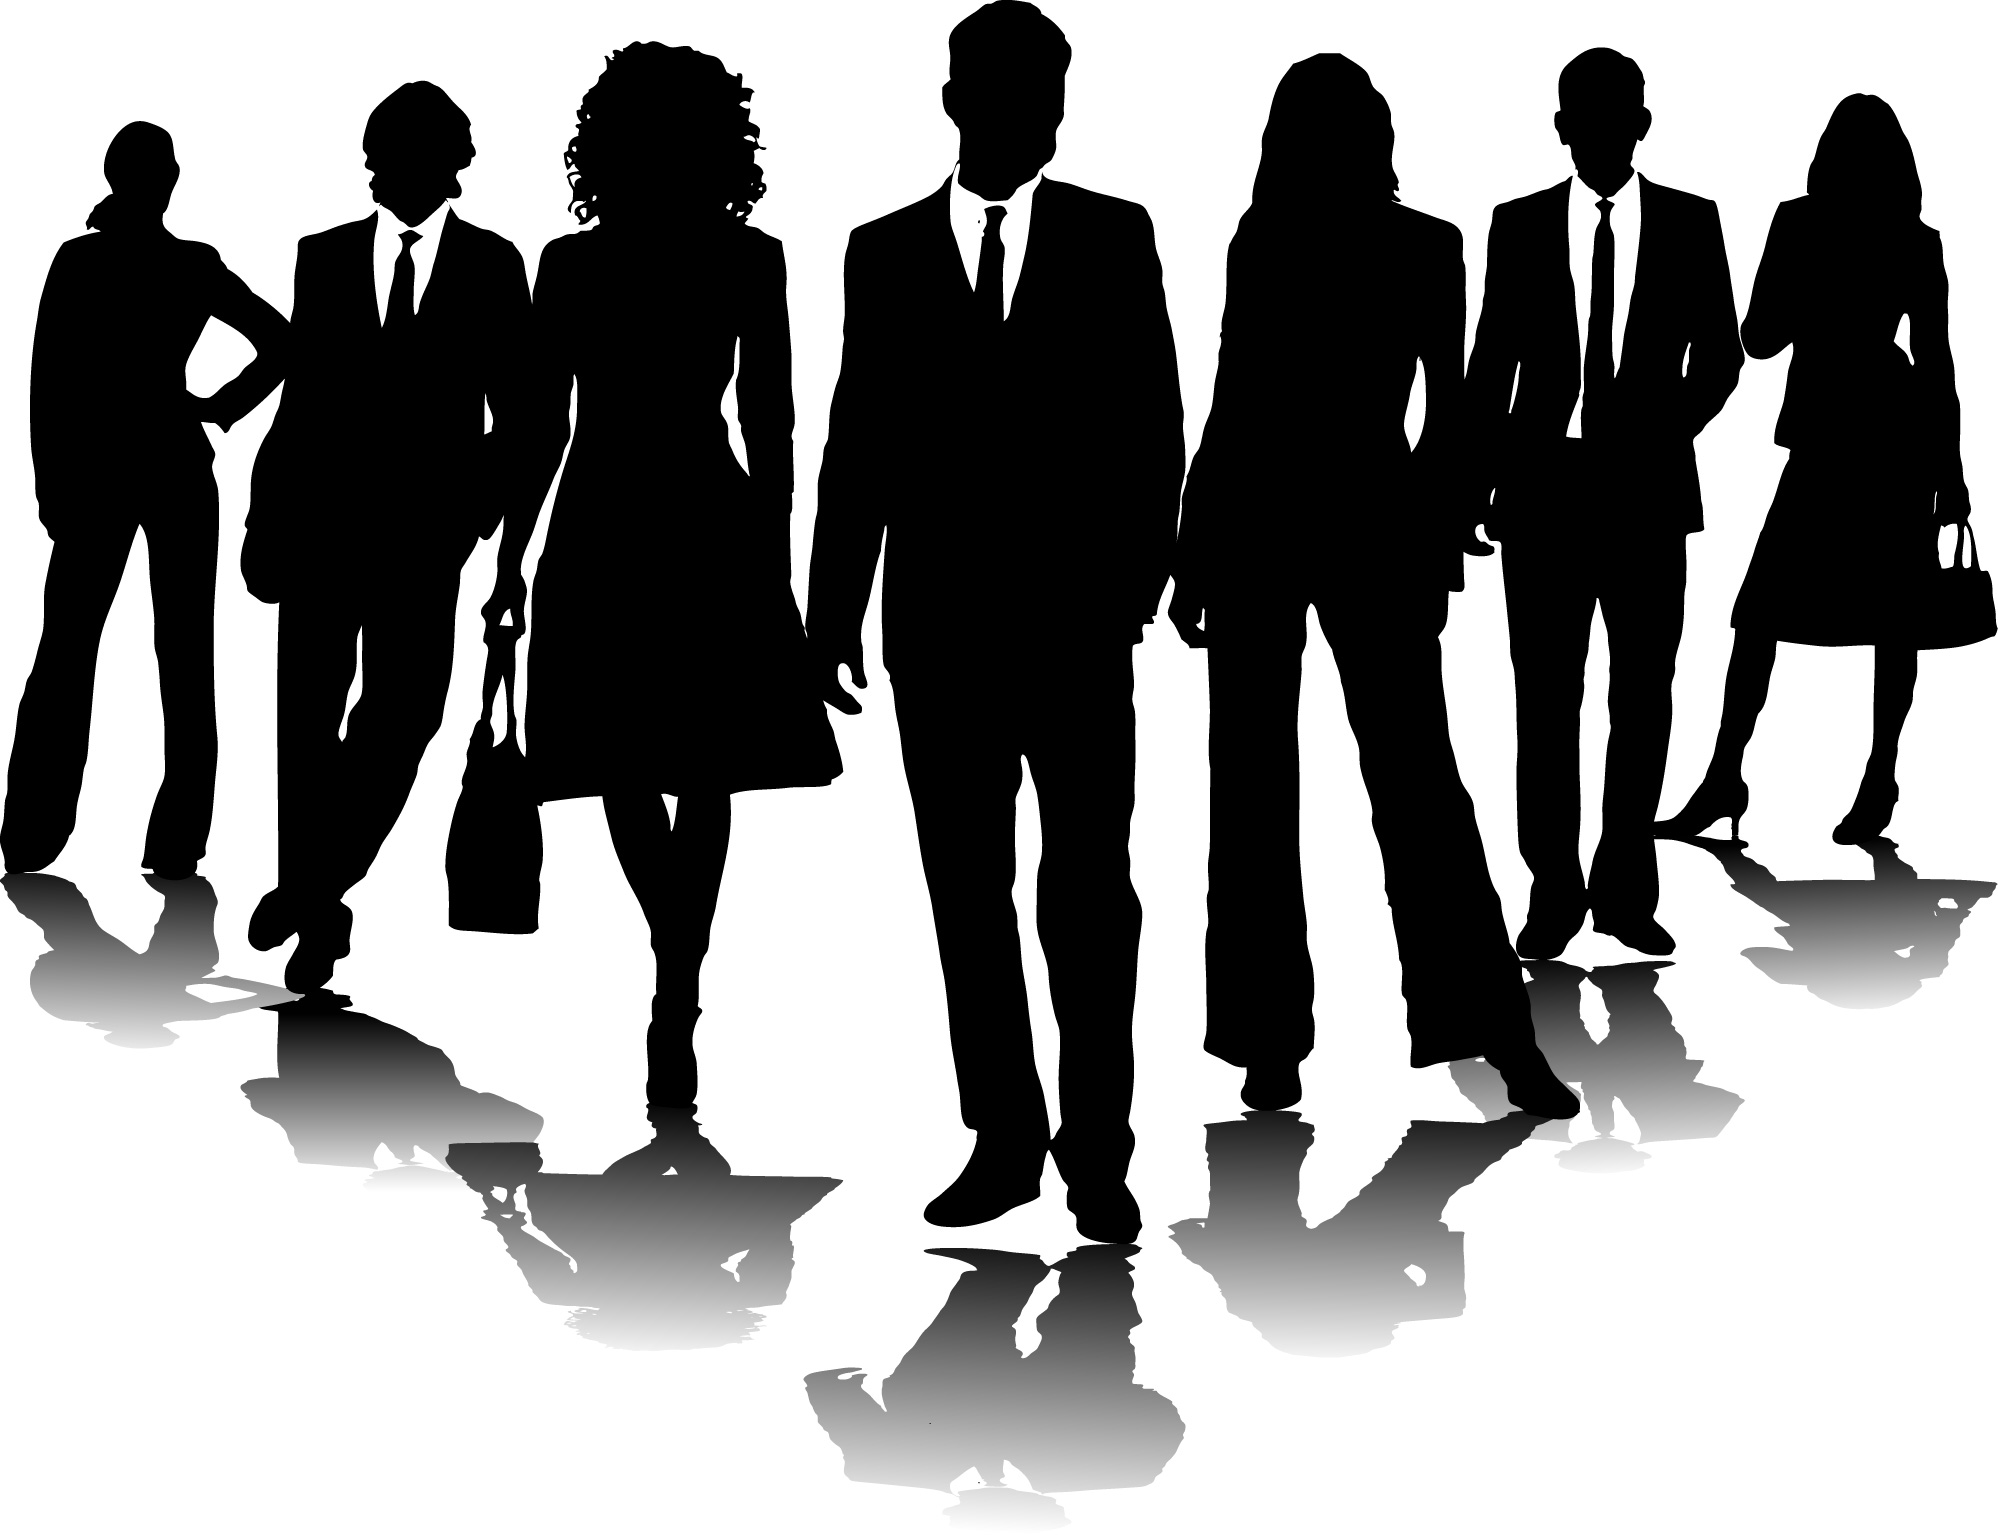 clipart people-clipart people-3